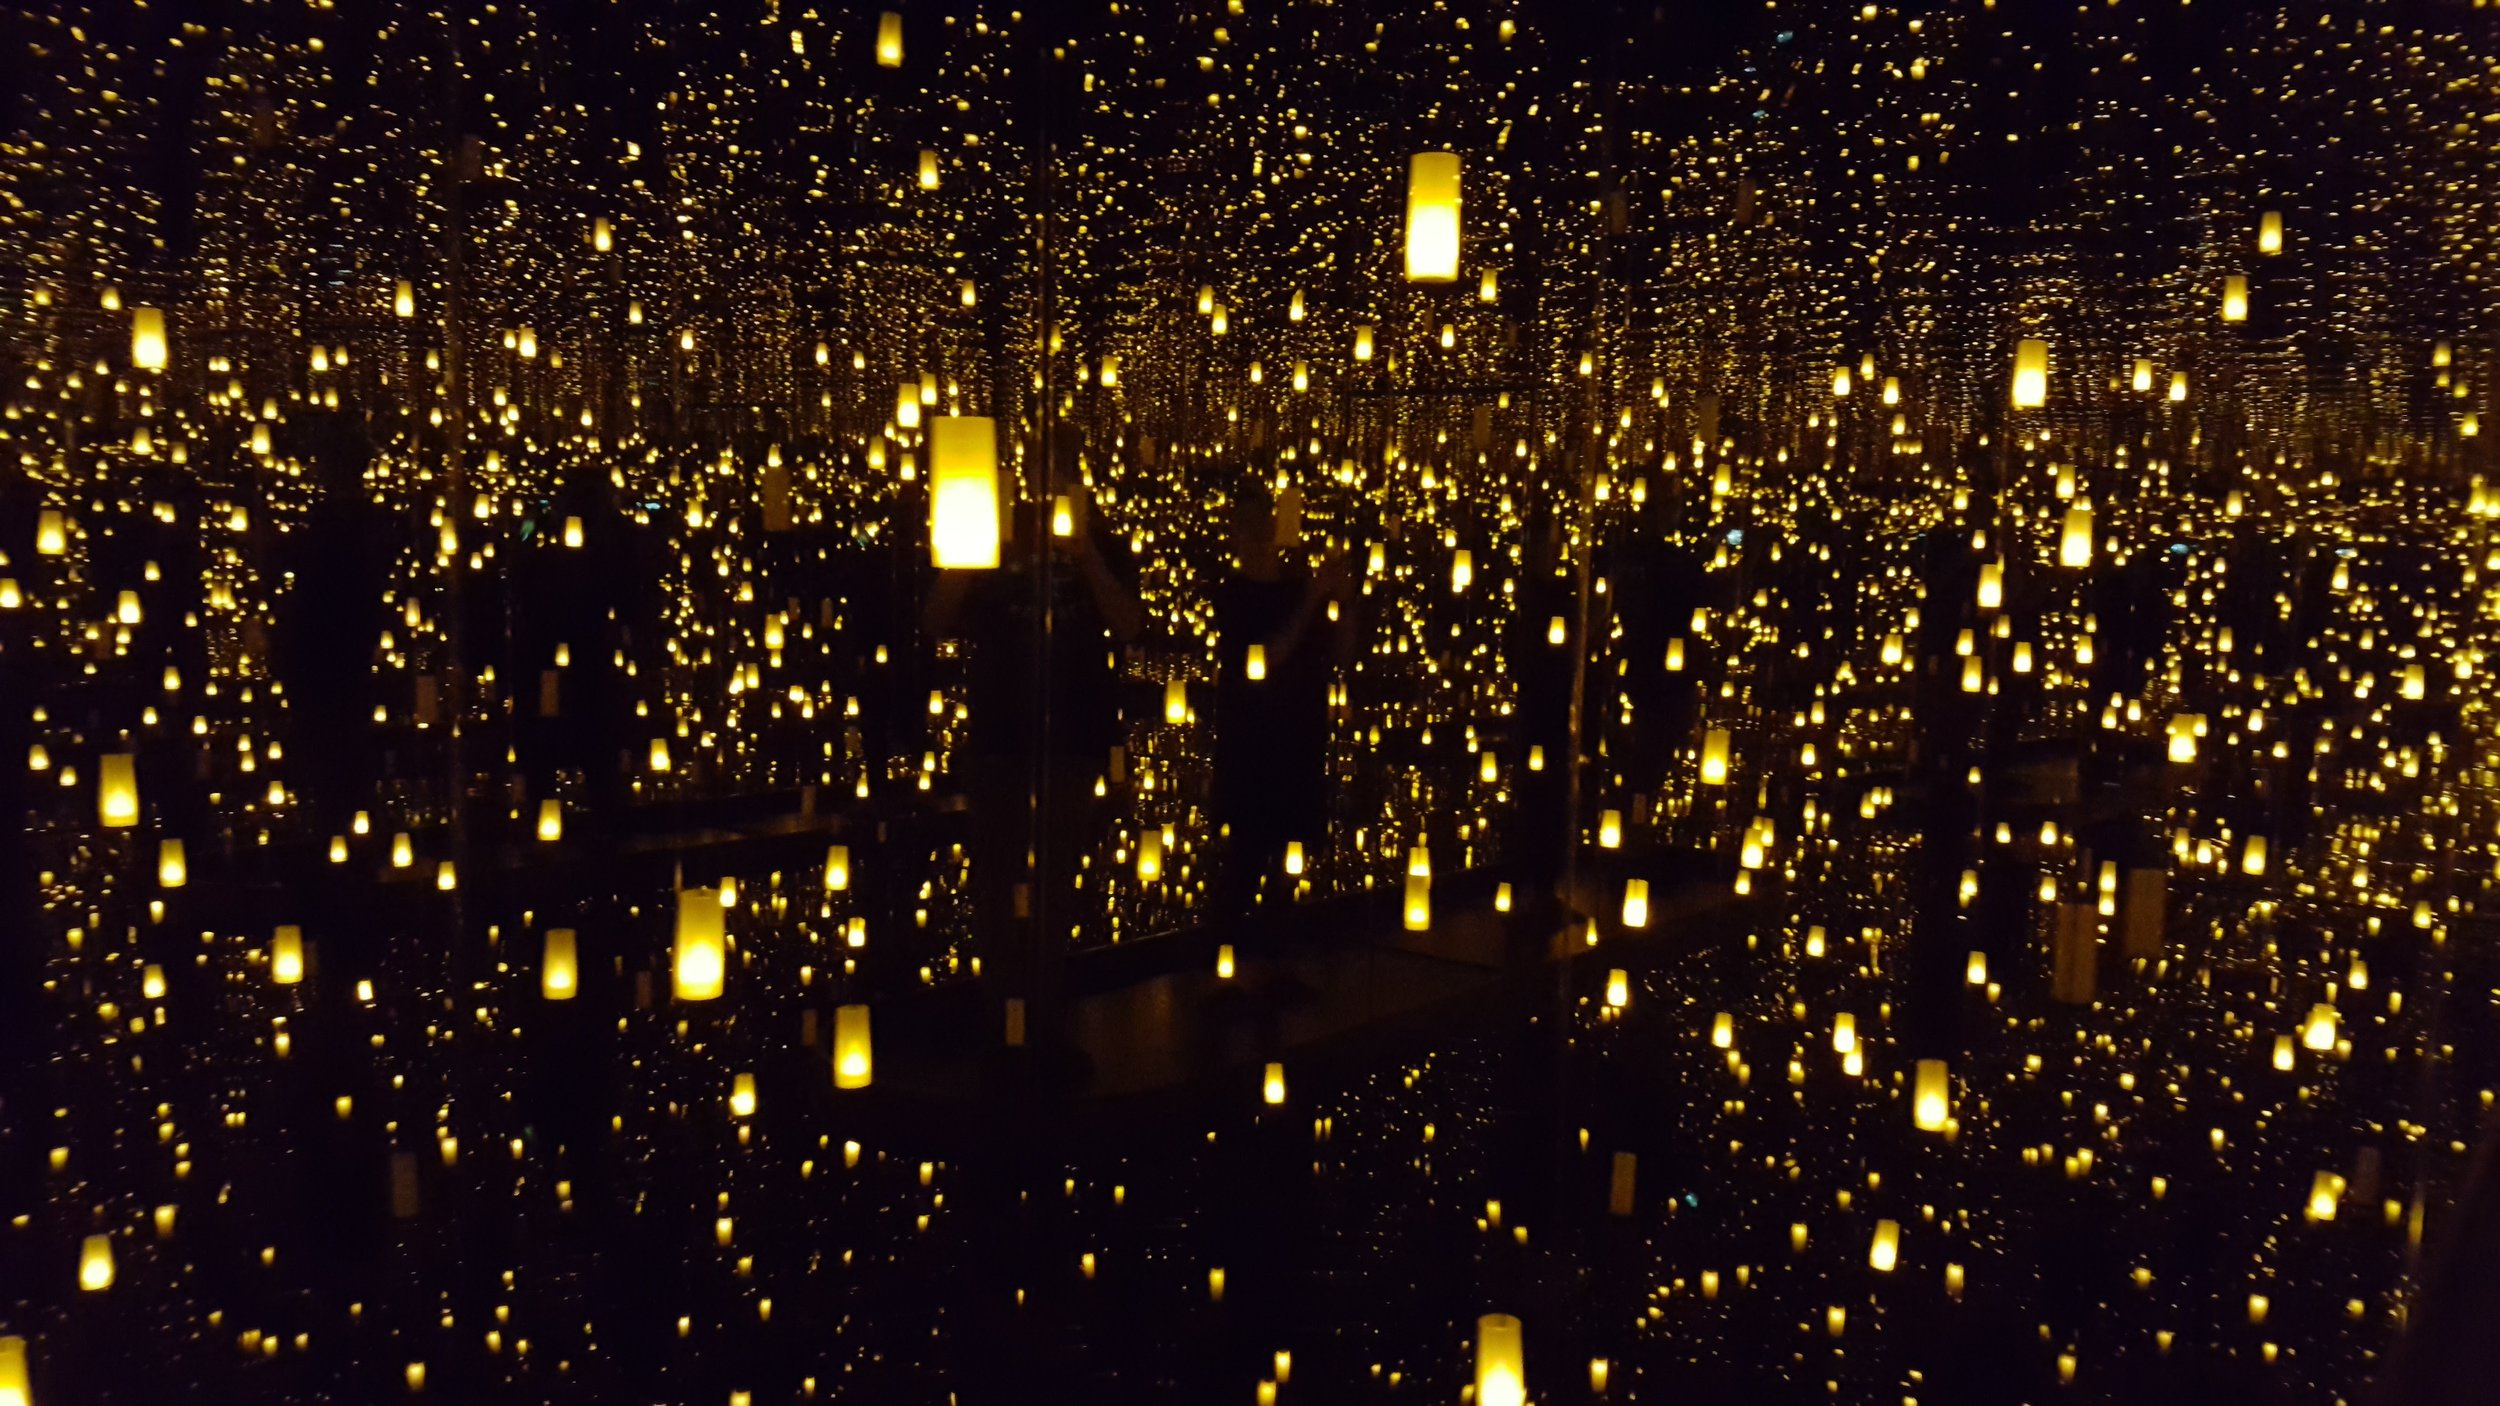 Yayoi Kusama,  Infinity Mirror Room—Aftermath of Obliteration of Eternity  (2009), represented by lanterns that seem to extend into infinite space.